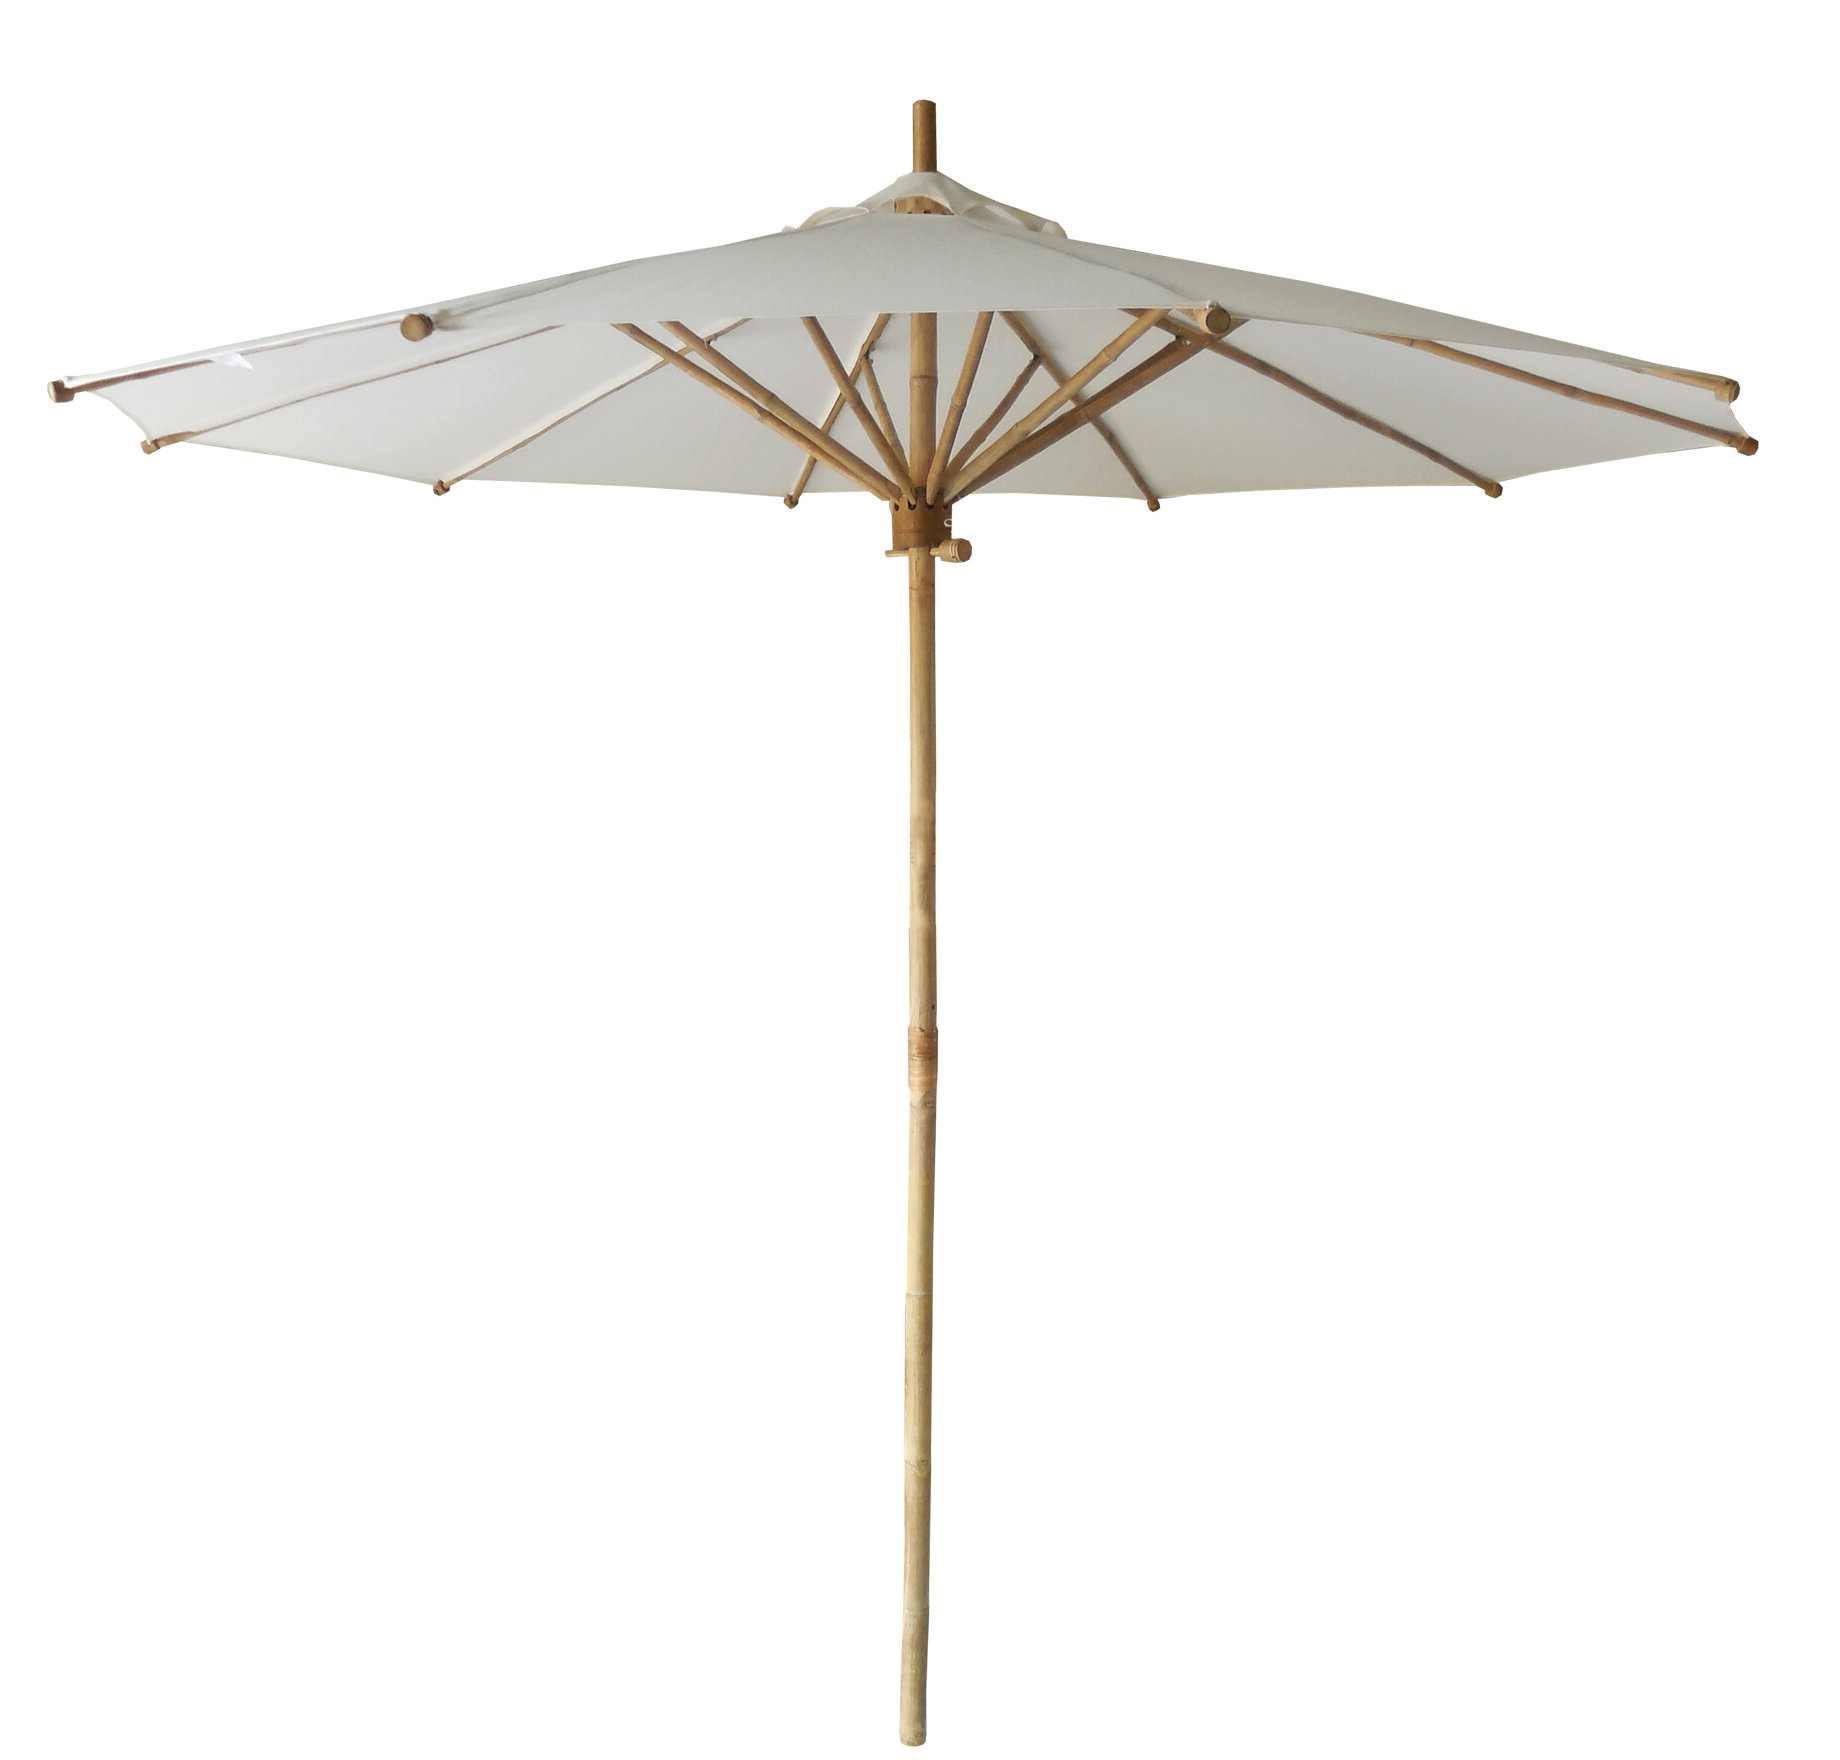 Esai 7' Beach Umbrella Intended For Well Liked Hyperion Beach Umbrellas (View 9 of 20)